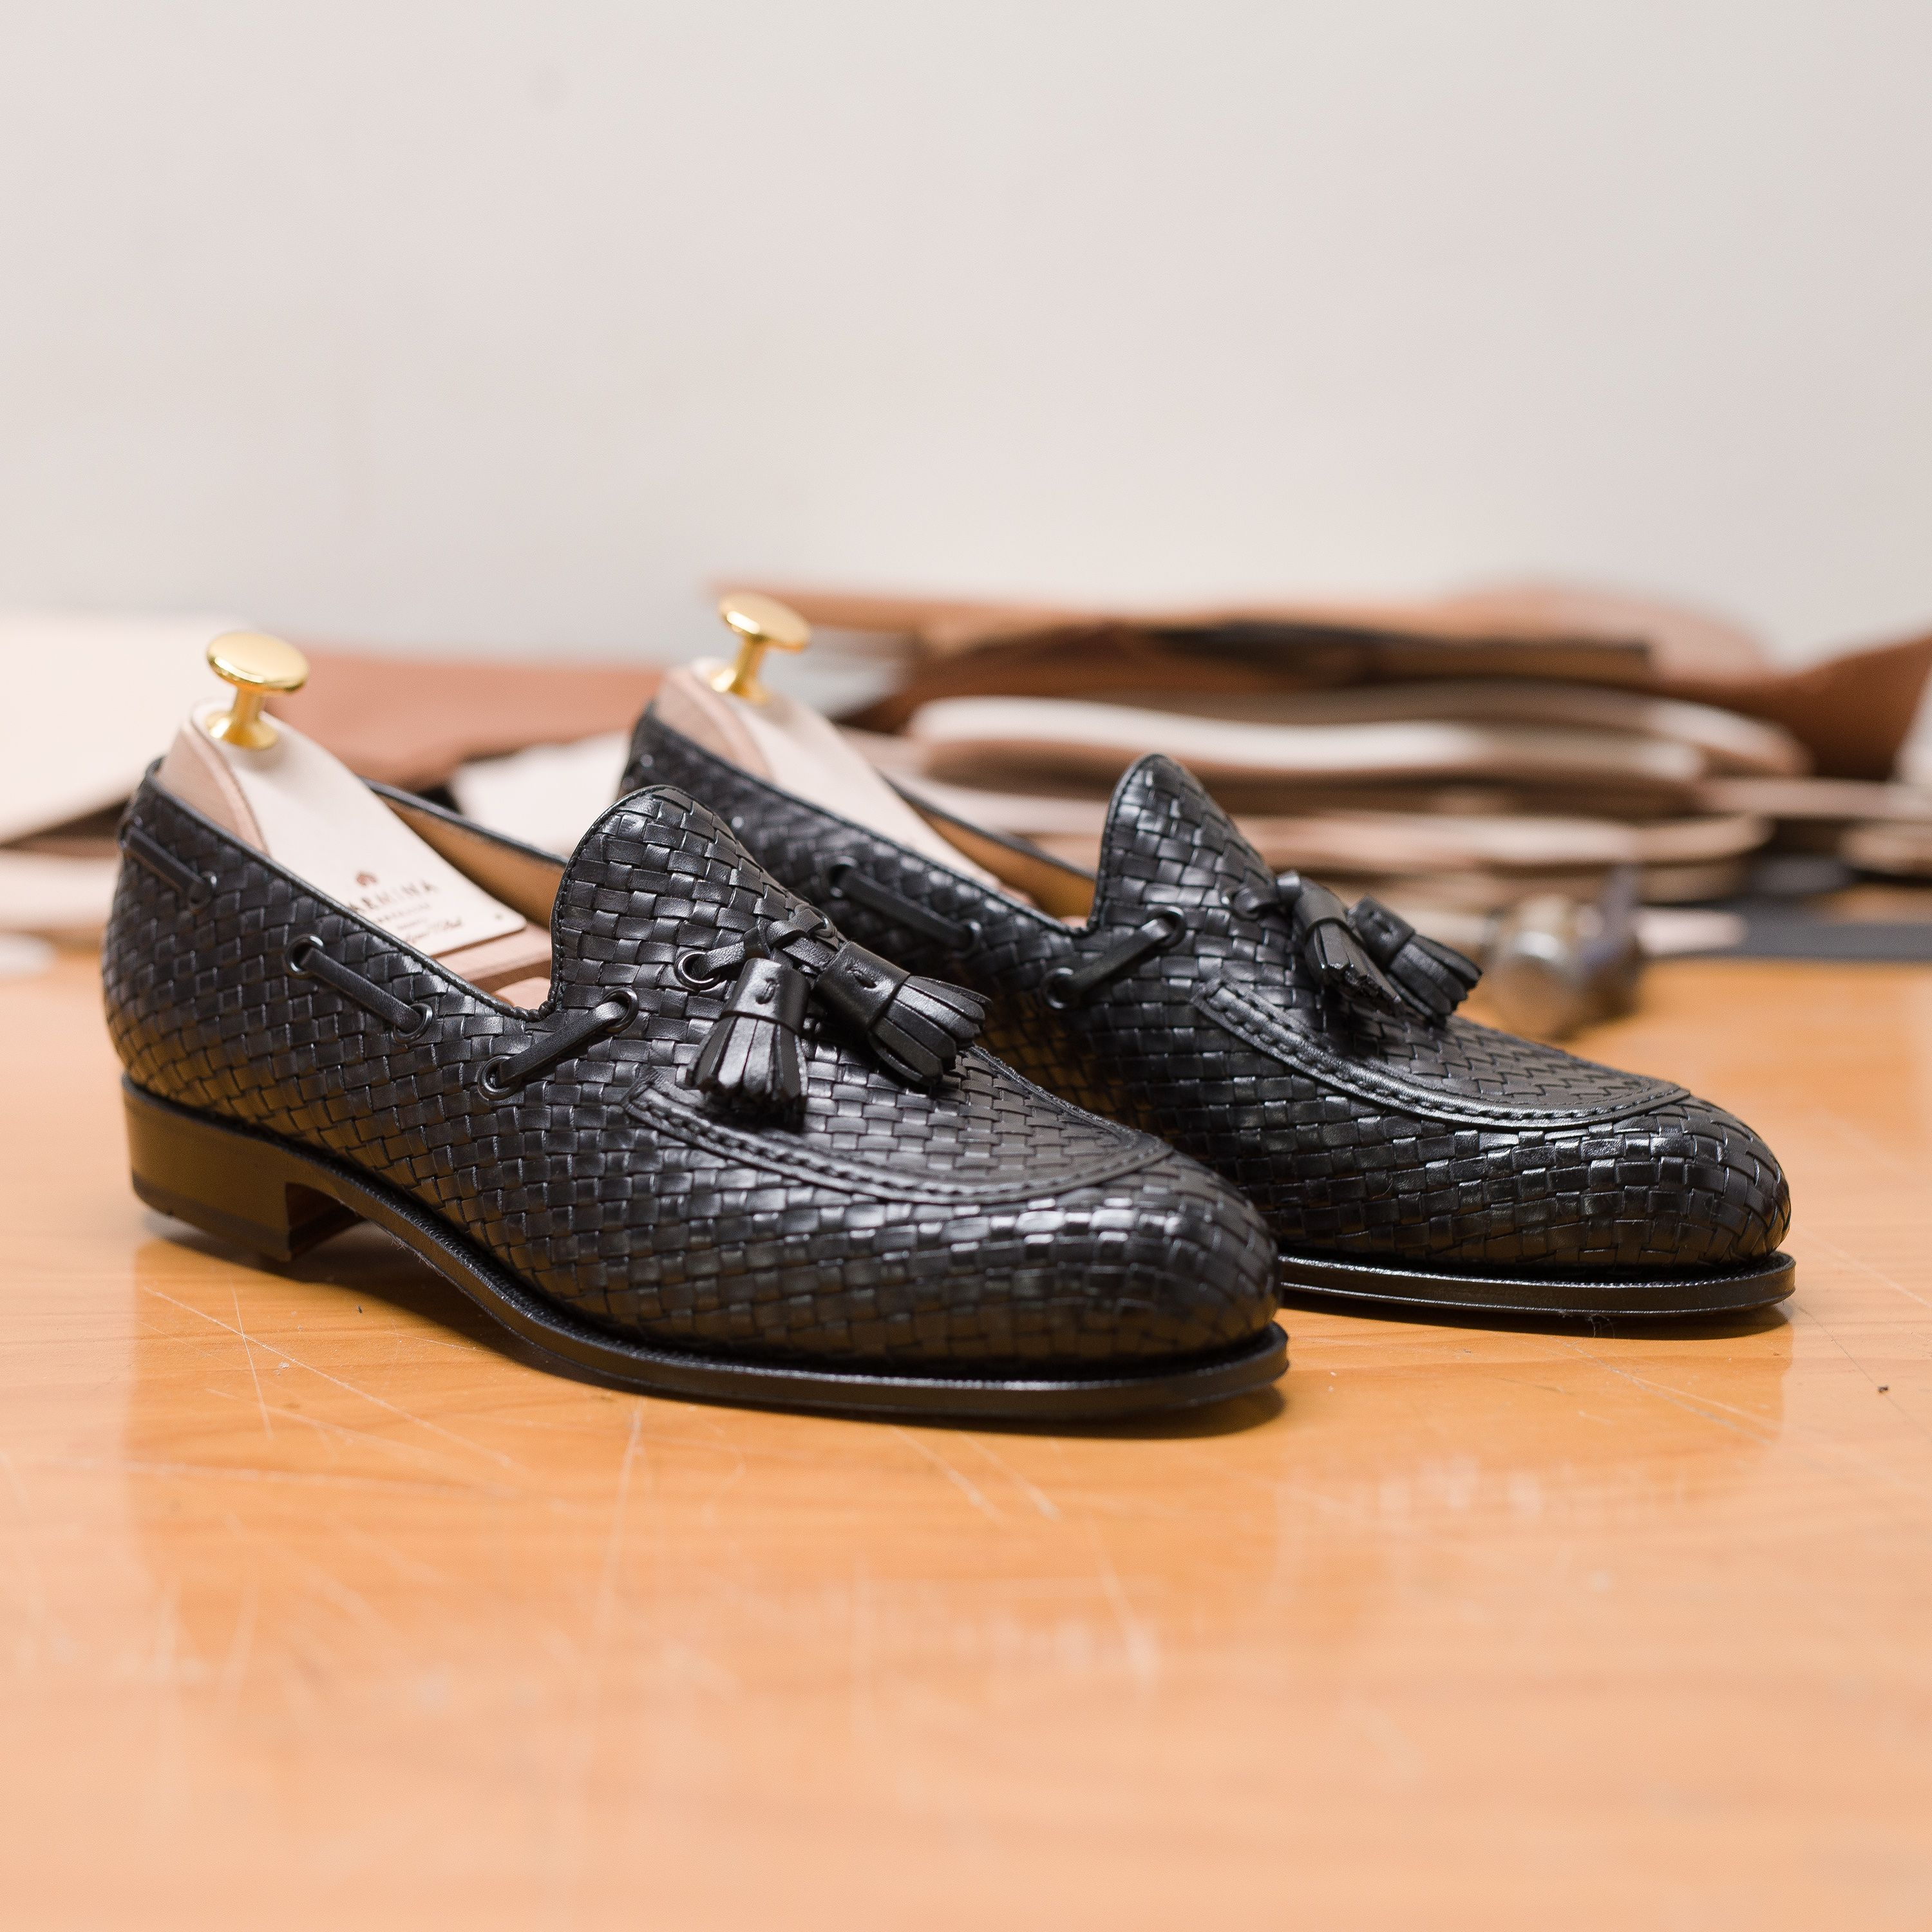 3f6aac7b860 BRAIDED TASSEL LOAFERS 80299 FOREST IN BLACK